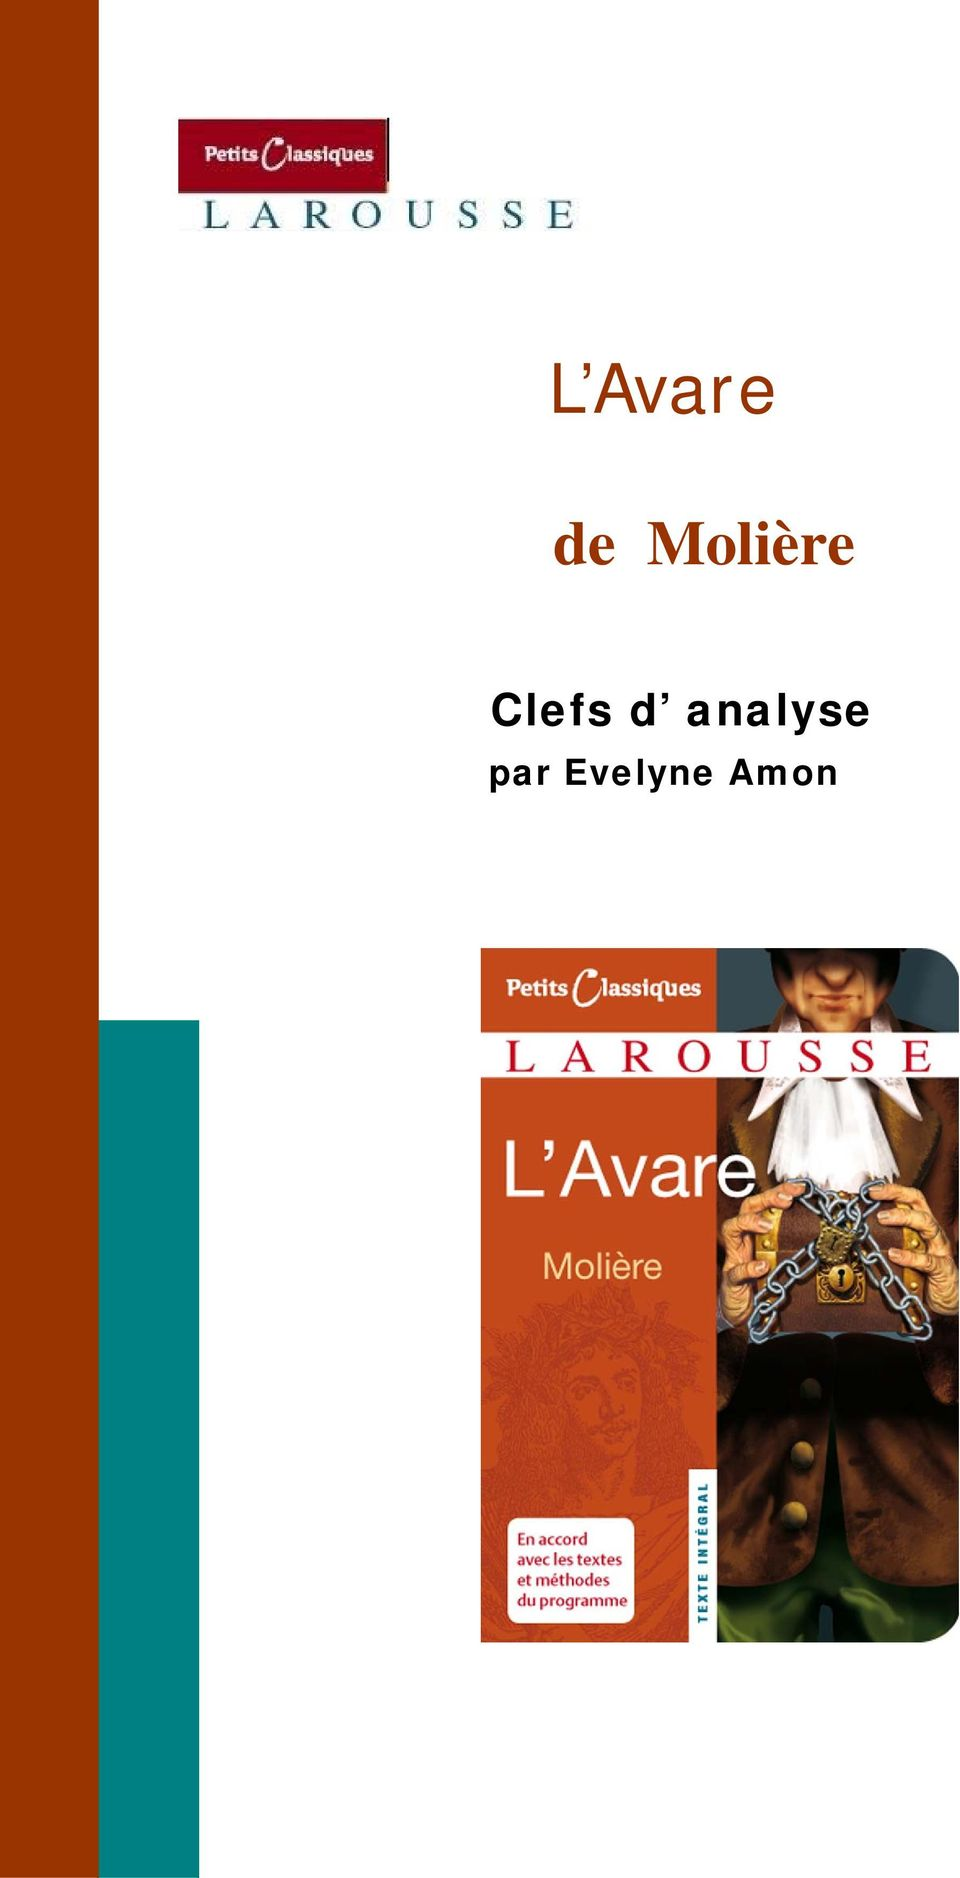 dissertation analyse psychologique Dissertation analyse d' dissertation d39amour - college essay help view on github caffe acknowledgment definition, an dissertation d39amour act of acknowledging.